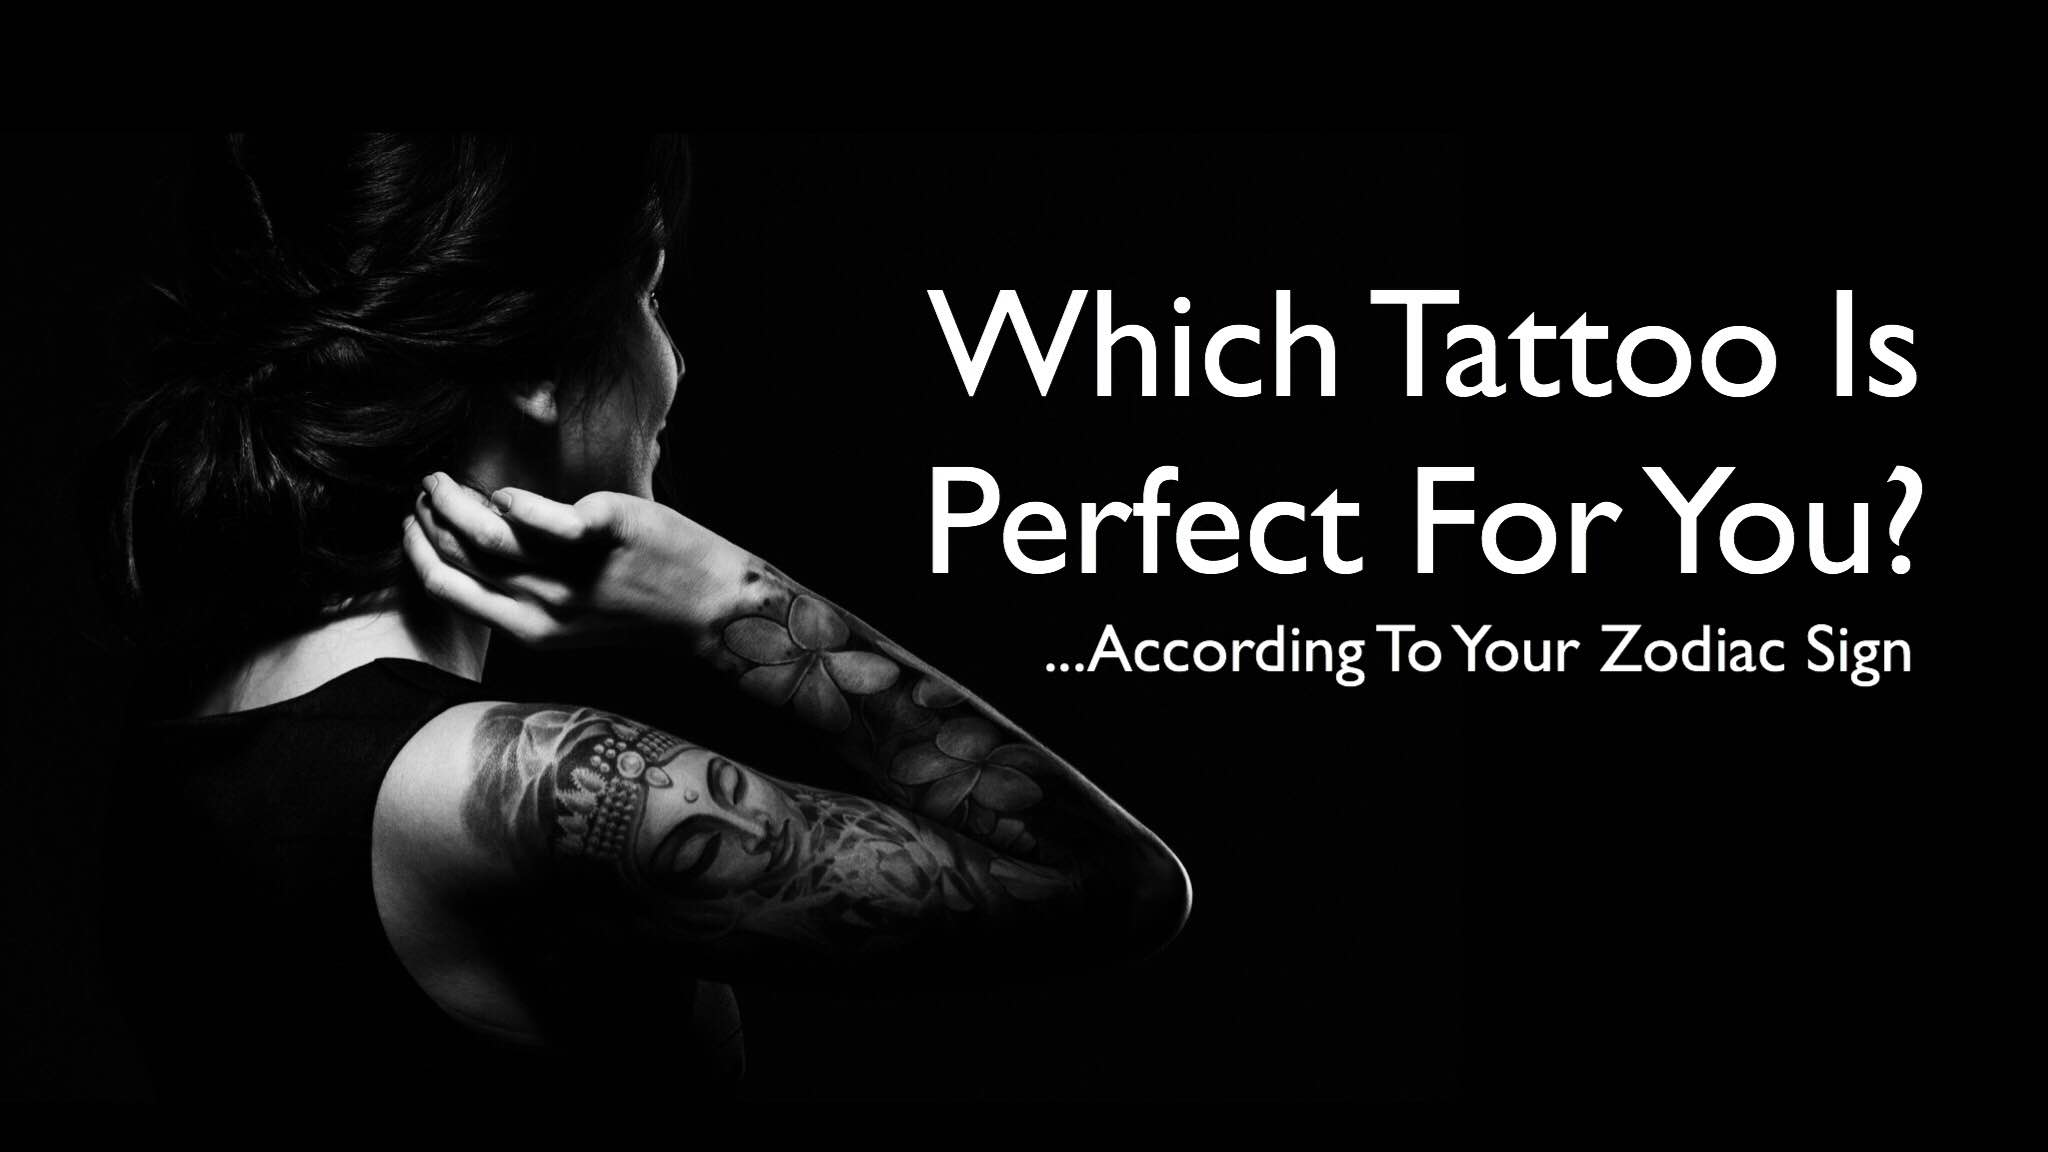 a783b66d0 Which Tattoo Is Perfect For You, According To Your Zodiac Sign?